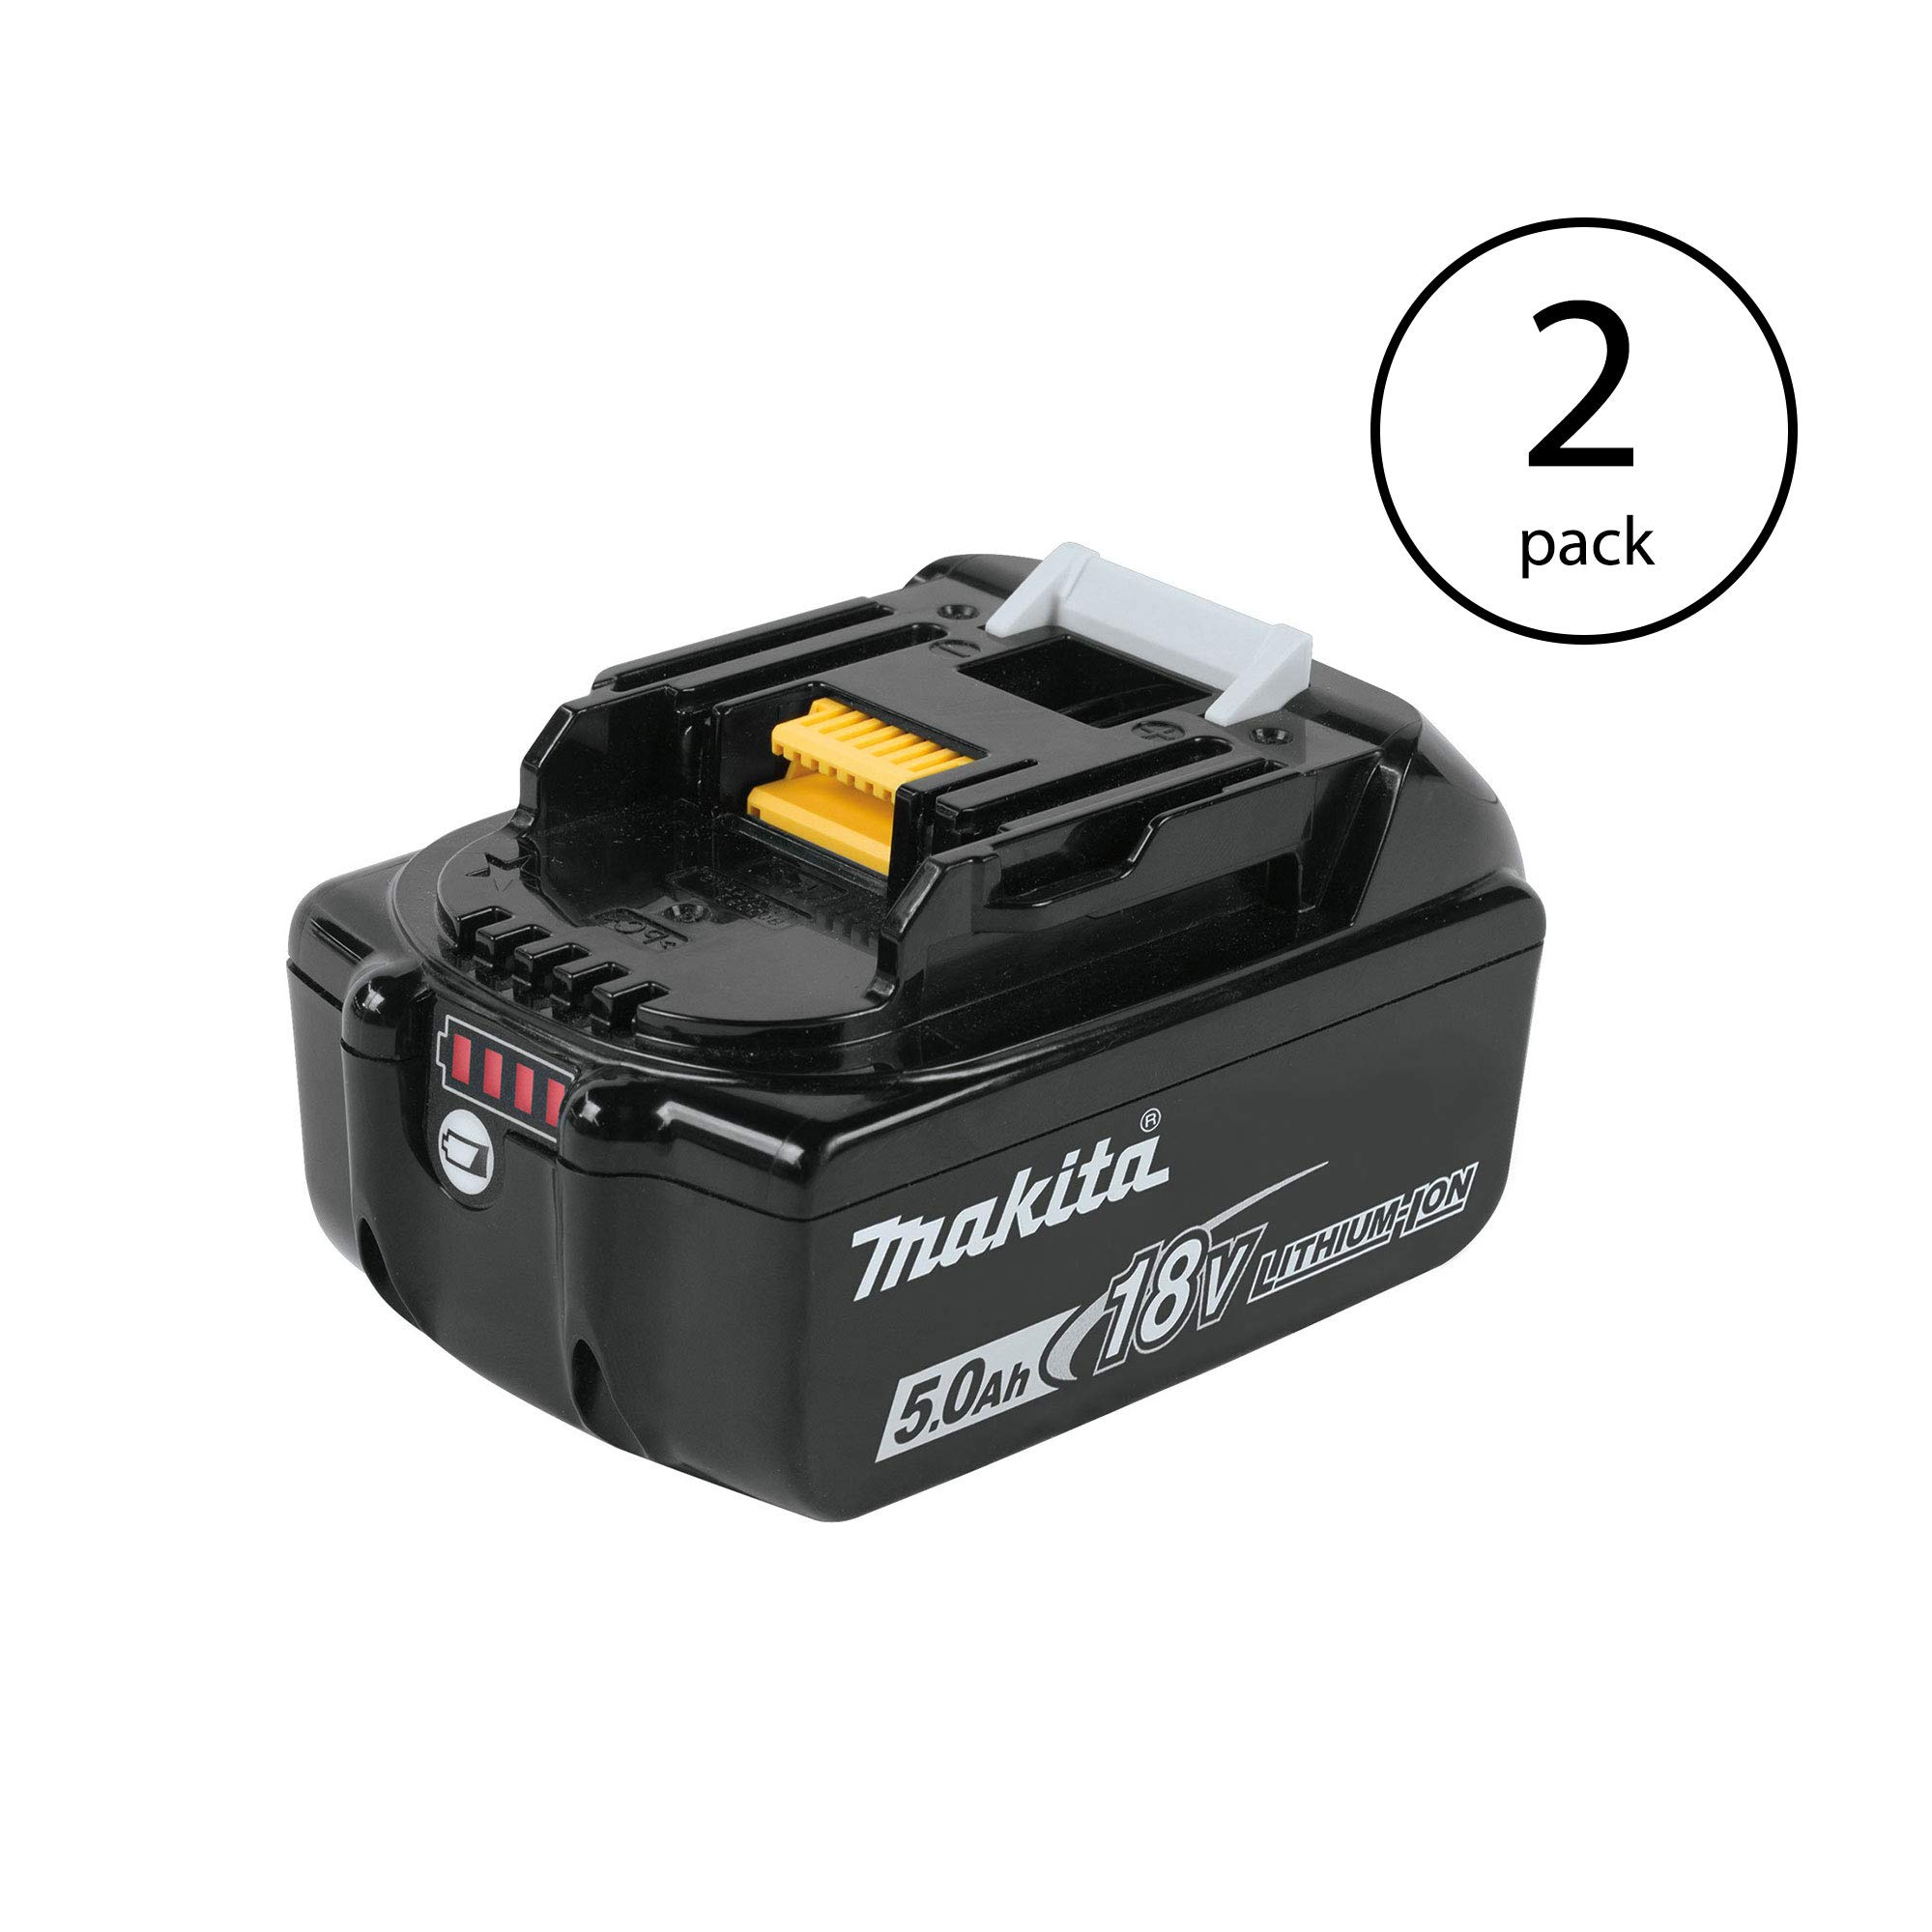 Makita BL1850B 18 Volt LXT Impact Resistant Charging Lithium Ion 5.0Ah Battery (2 Pack)